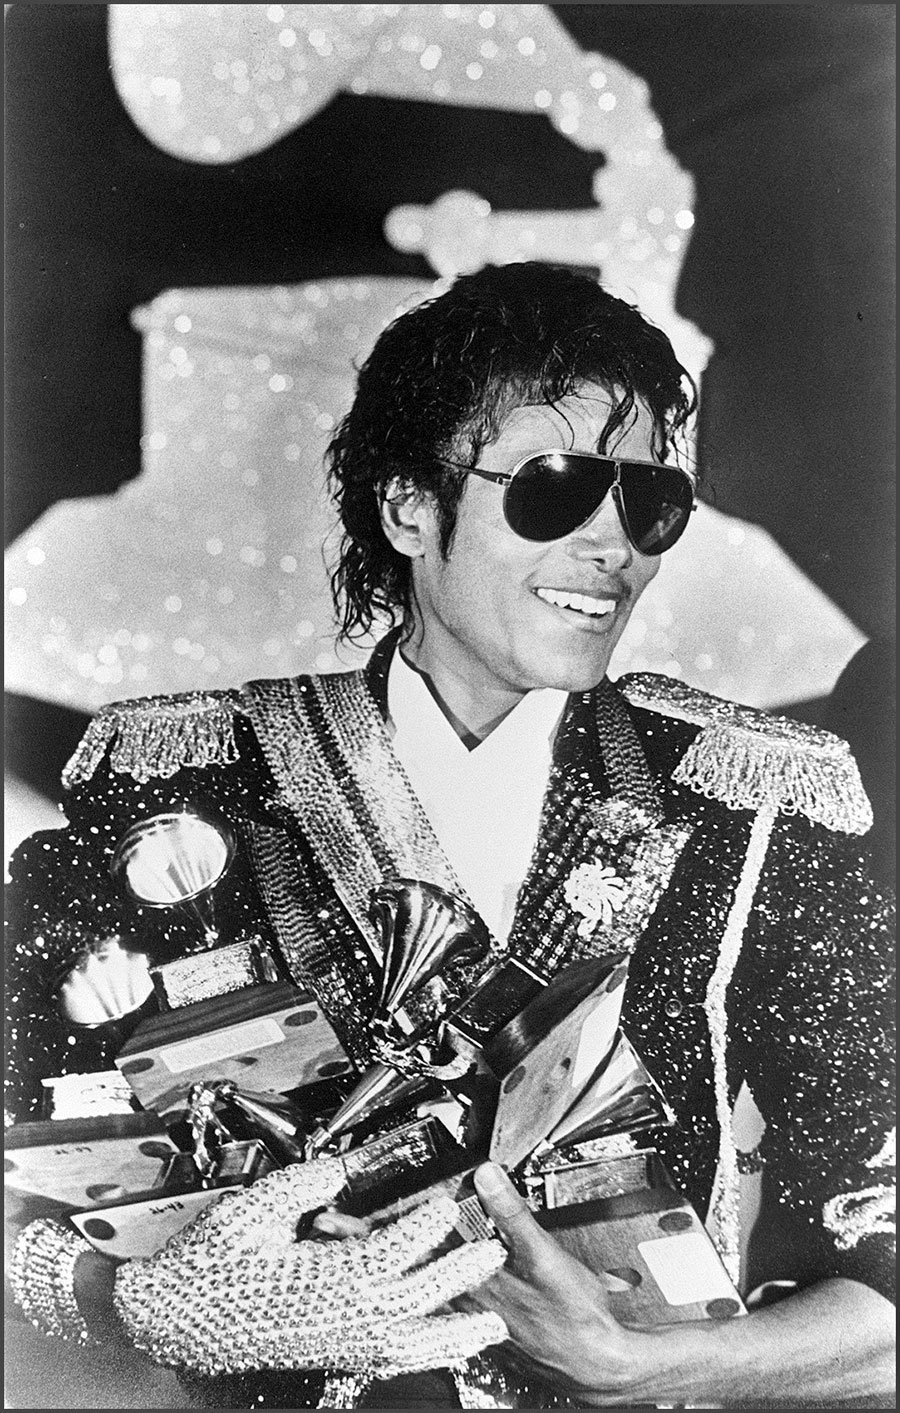 Michael Jackson wins a record 8 awards at the GRAMMY Awards February 28, 1984